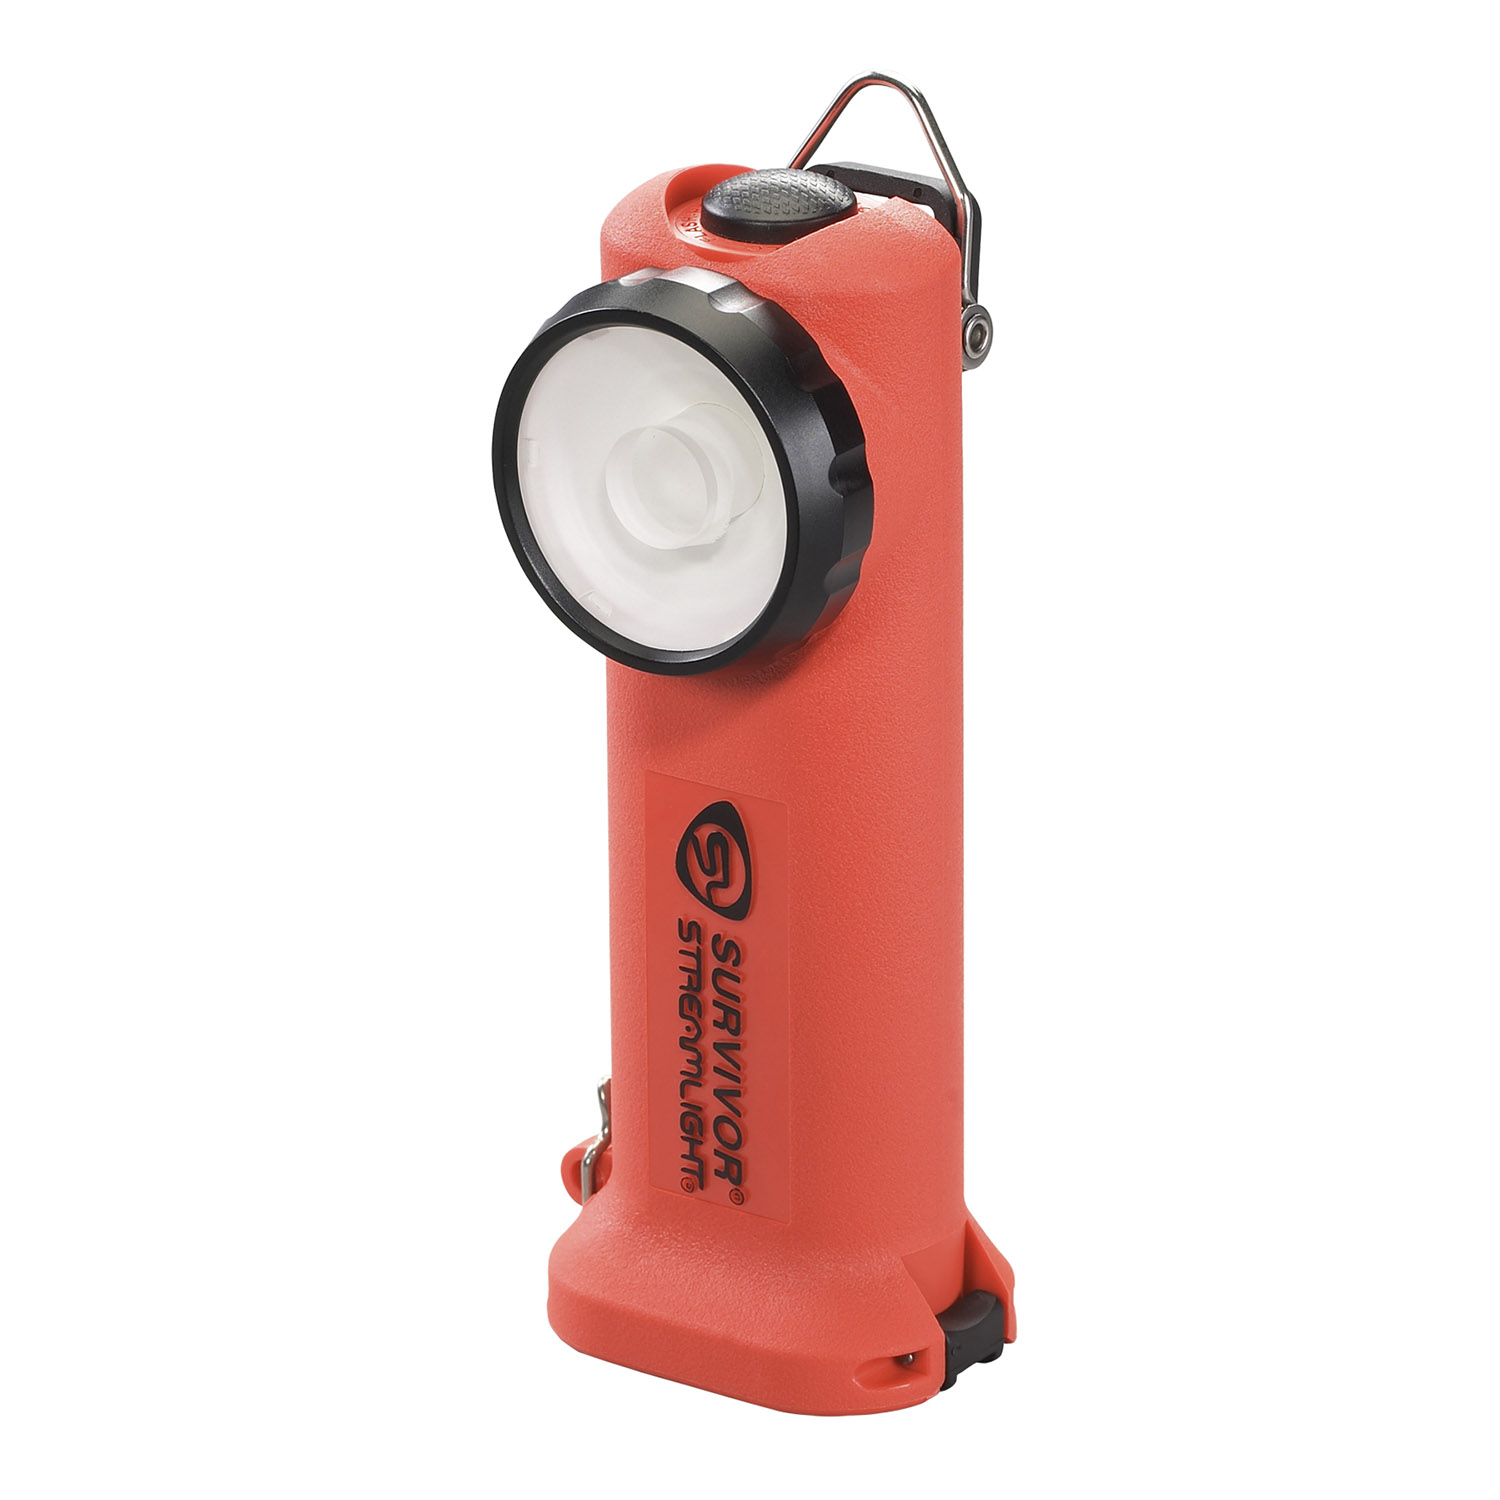 Streamlight Survivor Led Flashlight With Alkaline Battery Pack